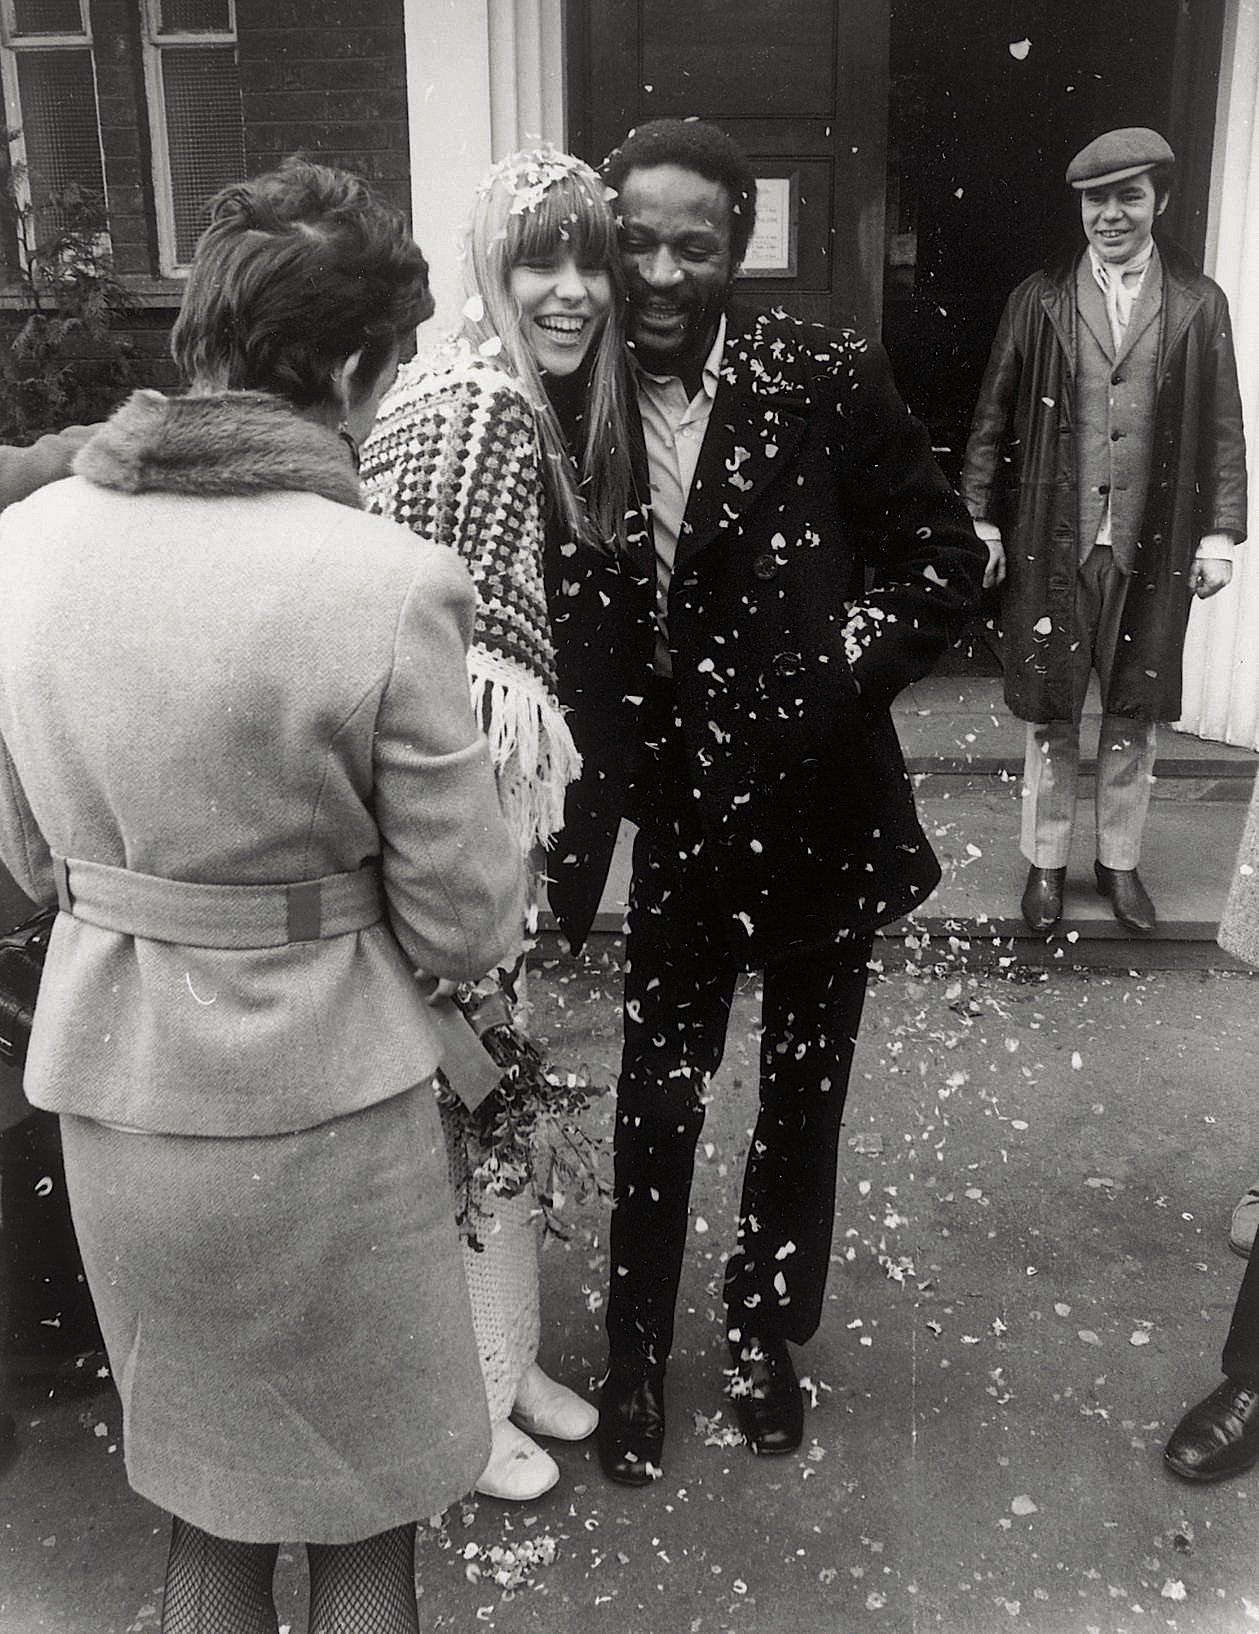 Johnny Edgecombe and his wife Ulla Vibeke Filtenborg on their wedding day at Lewisham Town Hall on the 18th of February 1970